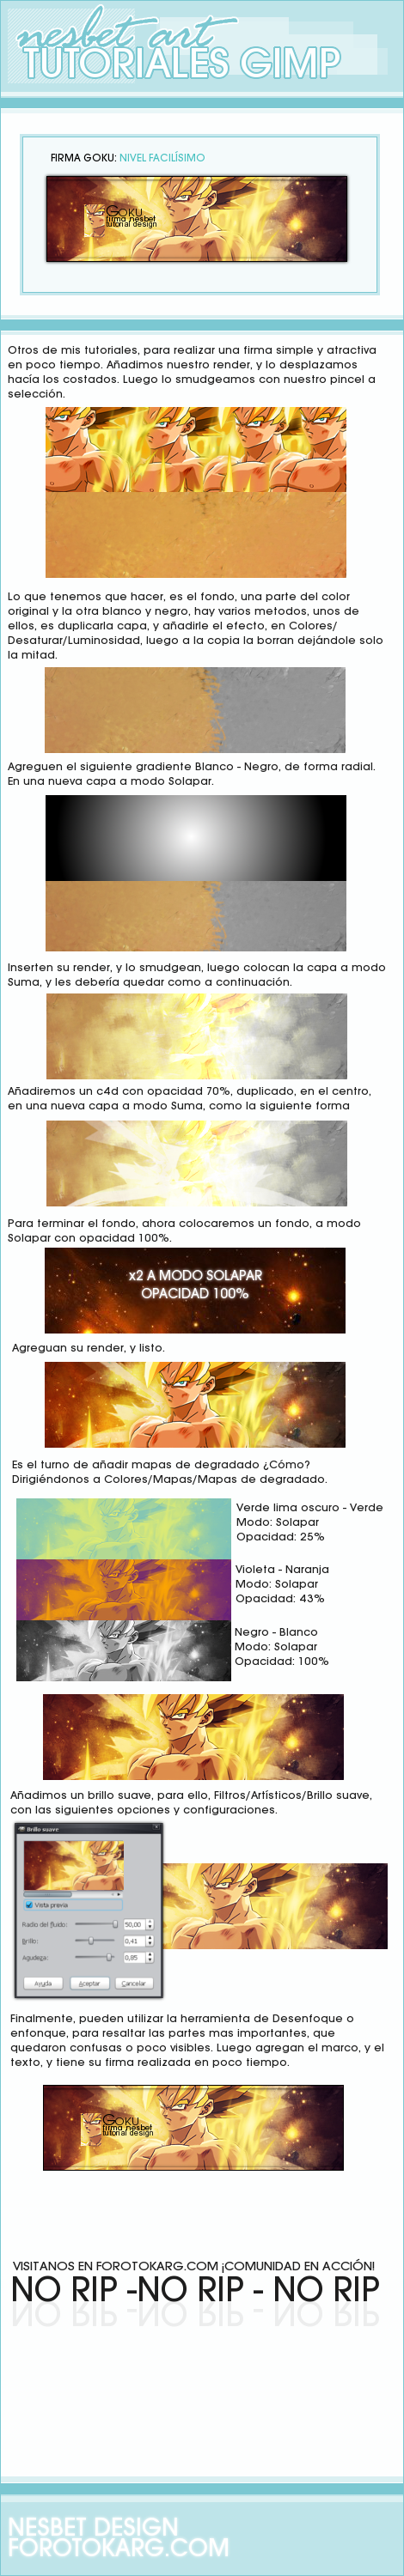 Gimp, crear firma de goku, facil, dragon ball